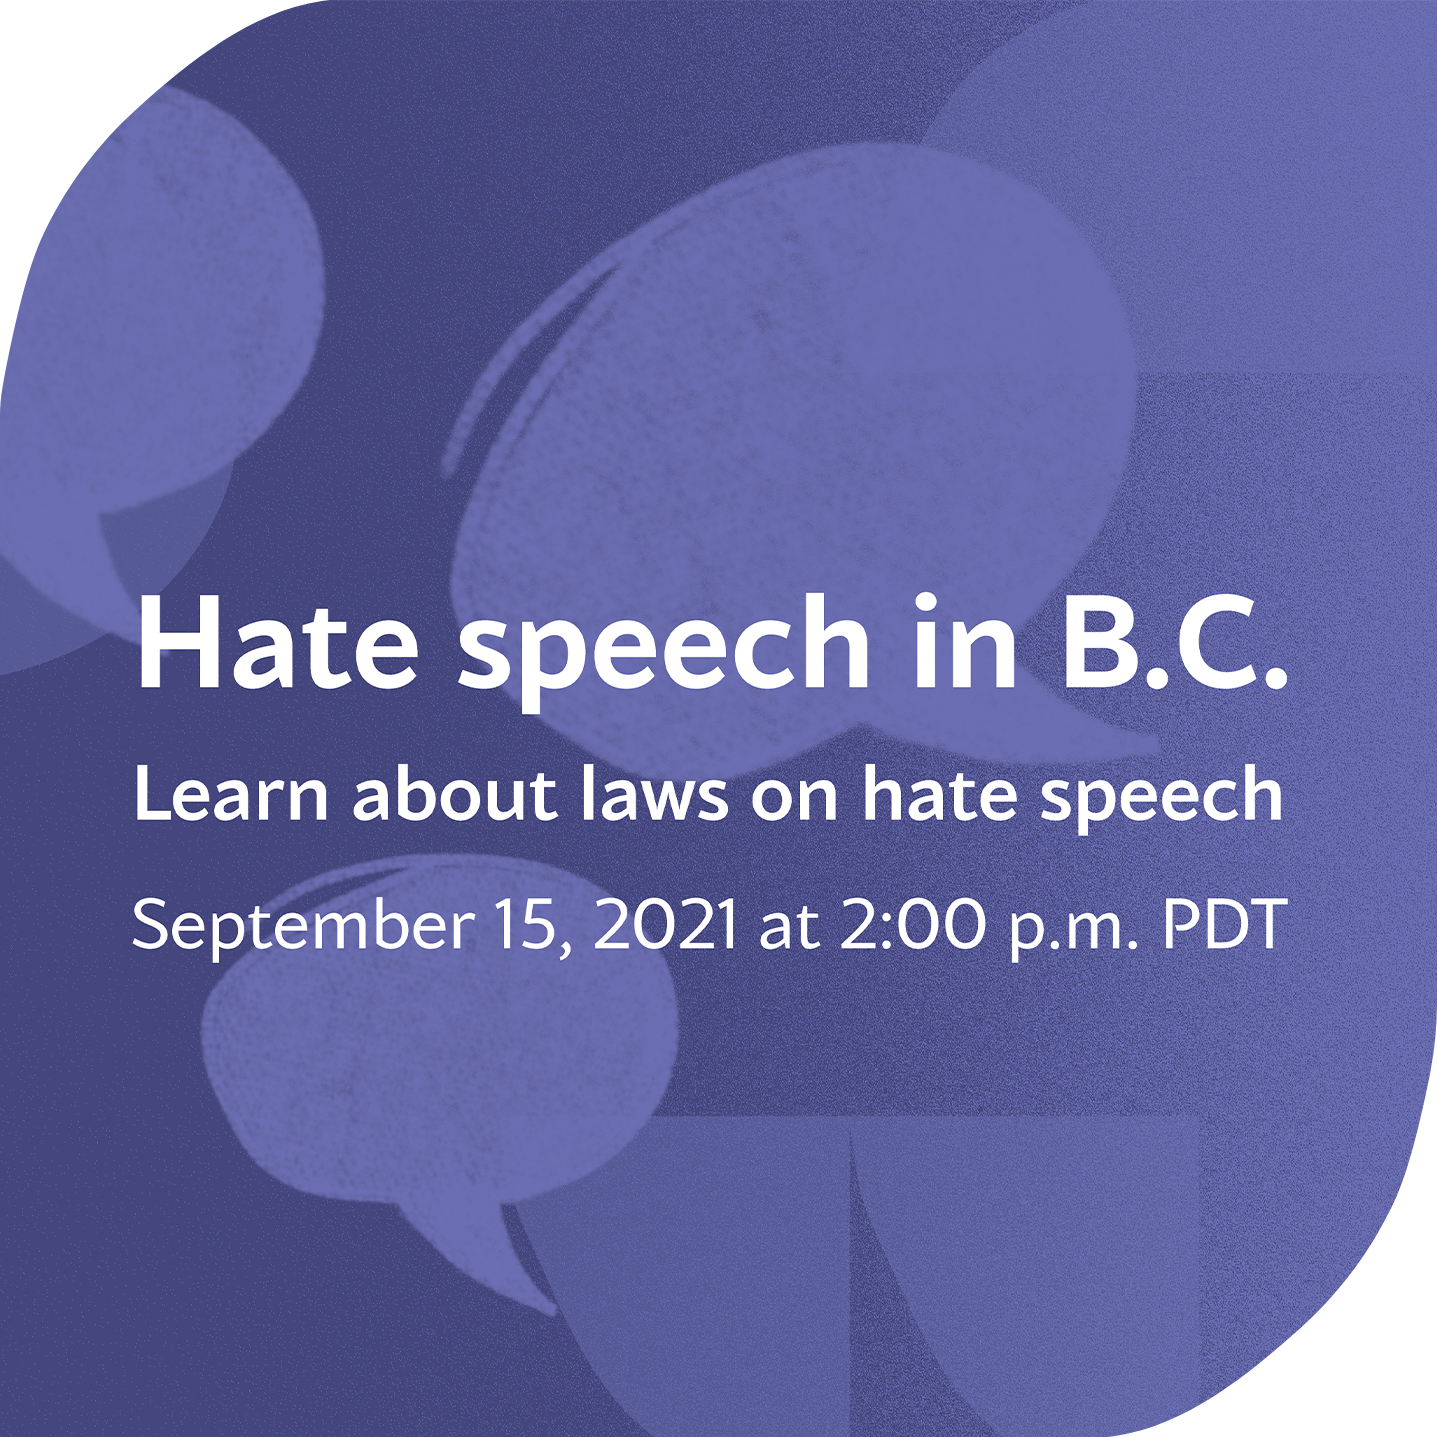 Purple graphic with speech bubbles. White text says: Hate speech in B.C. Learn about laws on hate speech. September 15, 2021 at 2:00 p.m. PDT